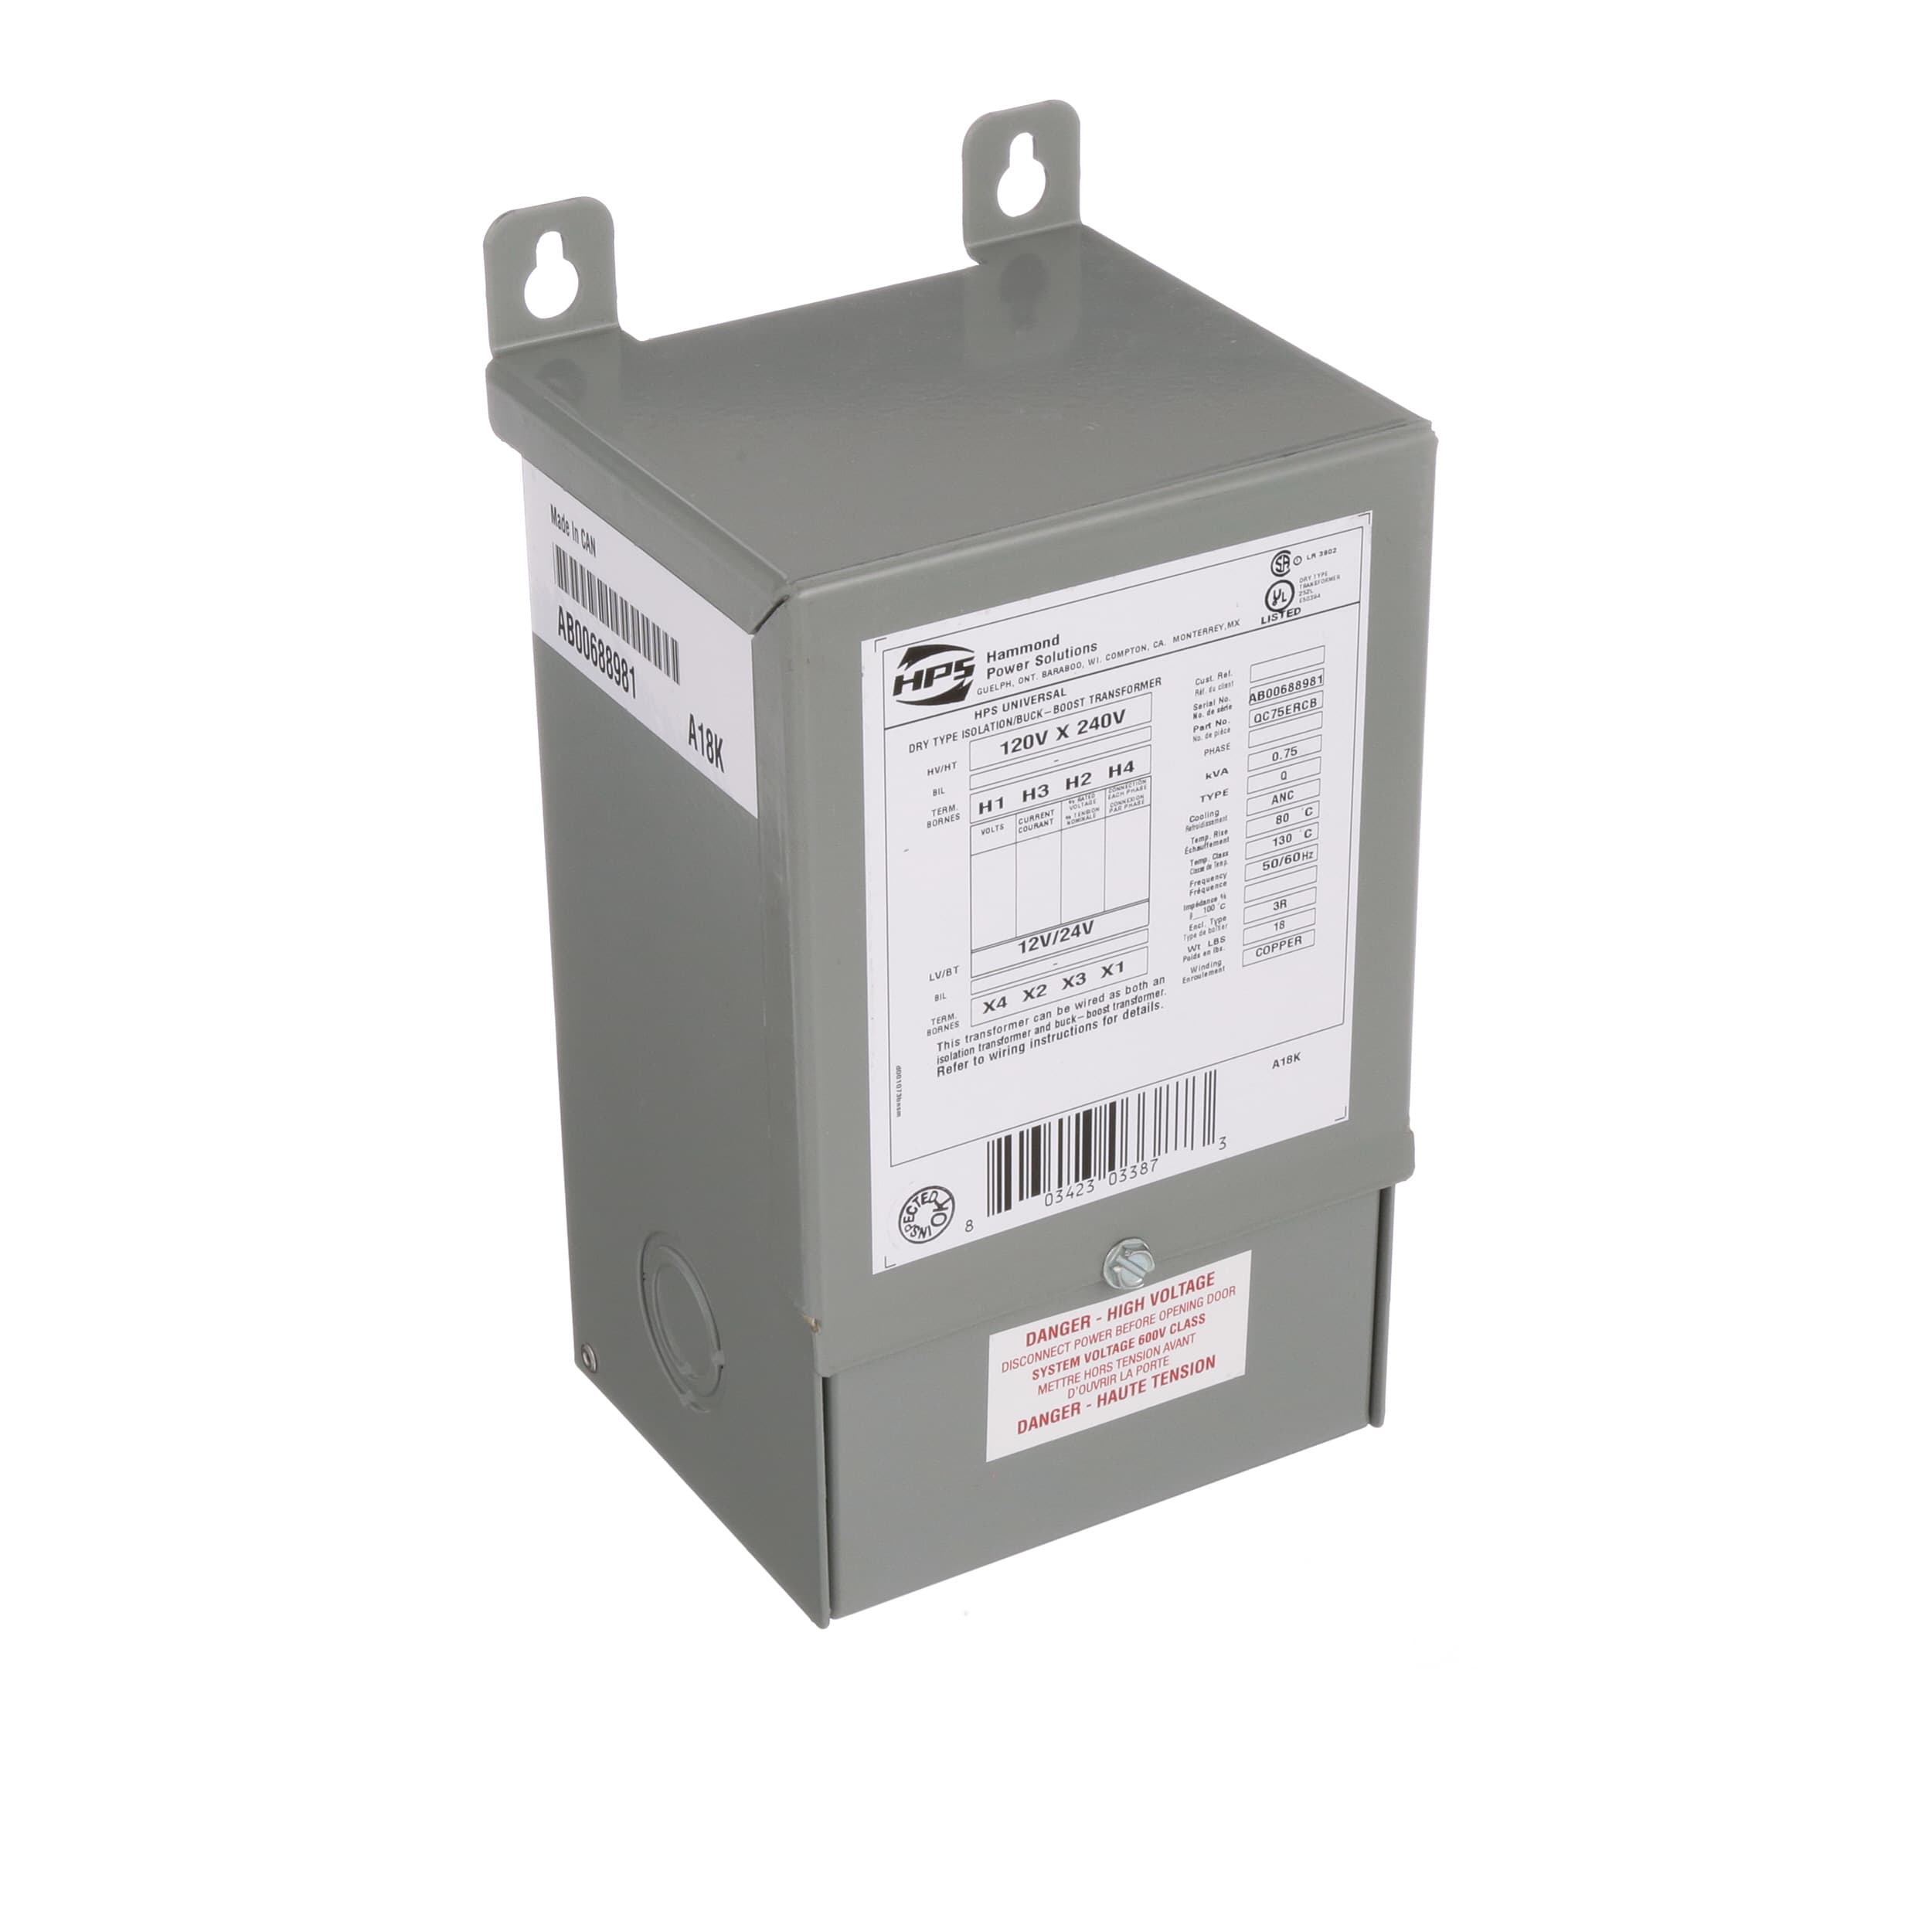 Hammond Power Solutions Qc75ercb Transformer Buck Boost Config Drytype Testing Open Electrical Nema Encapsulated 1 Freq 50 60hz Pri 120 240vac Allied Electronics Automation